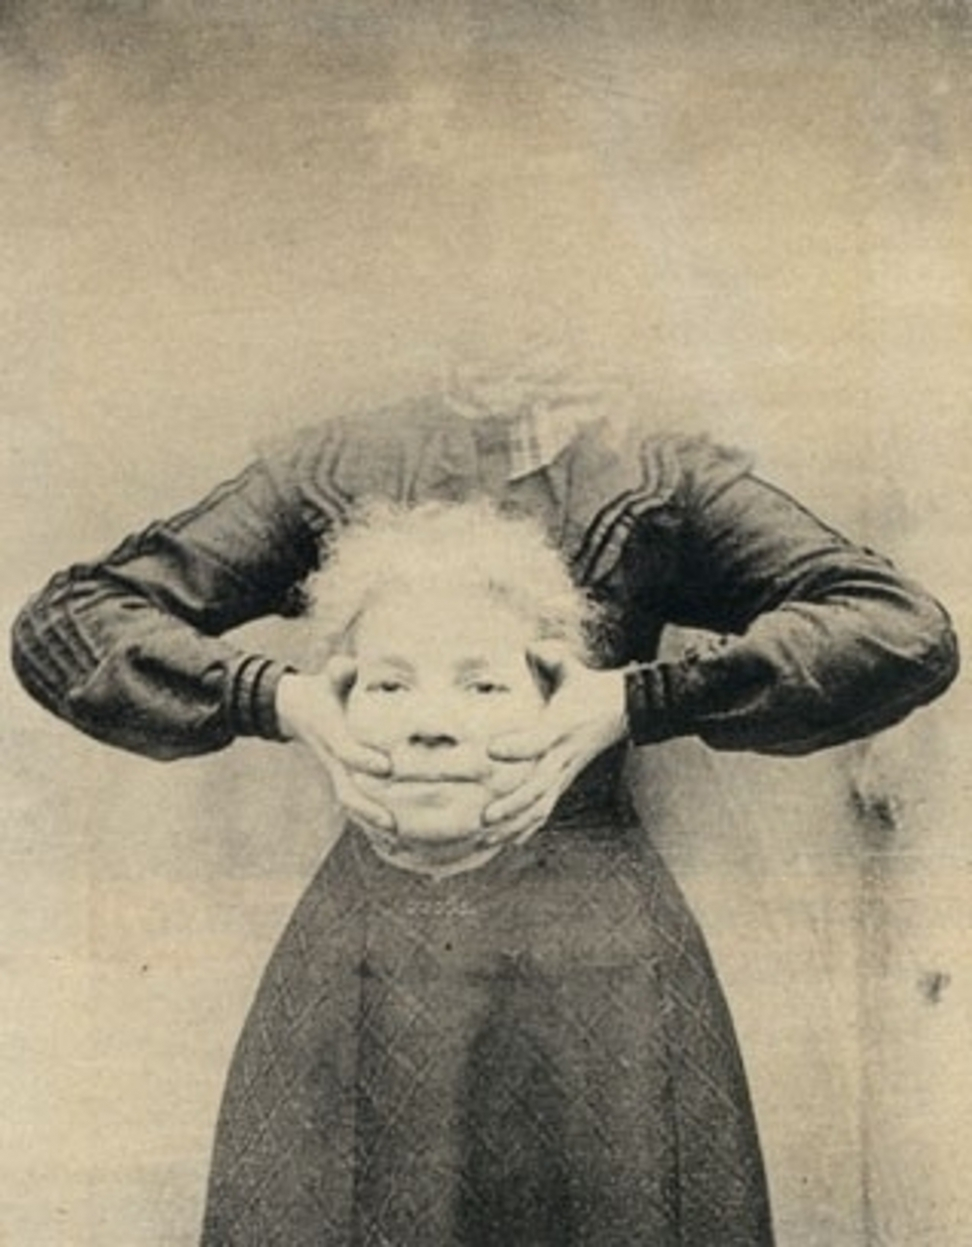 headless-photography-spooky-Victorian-traditions